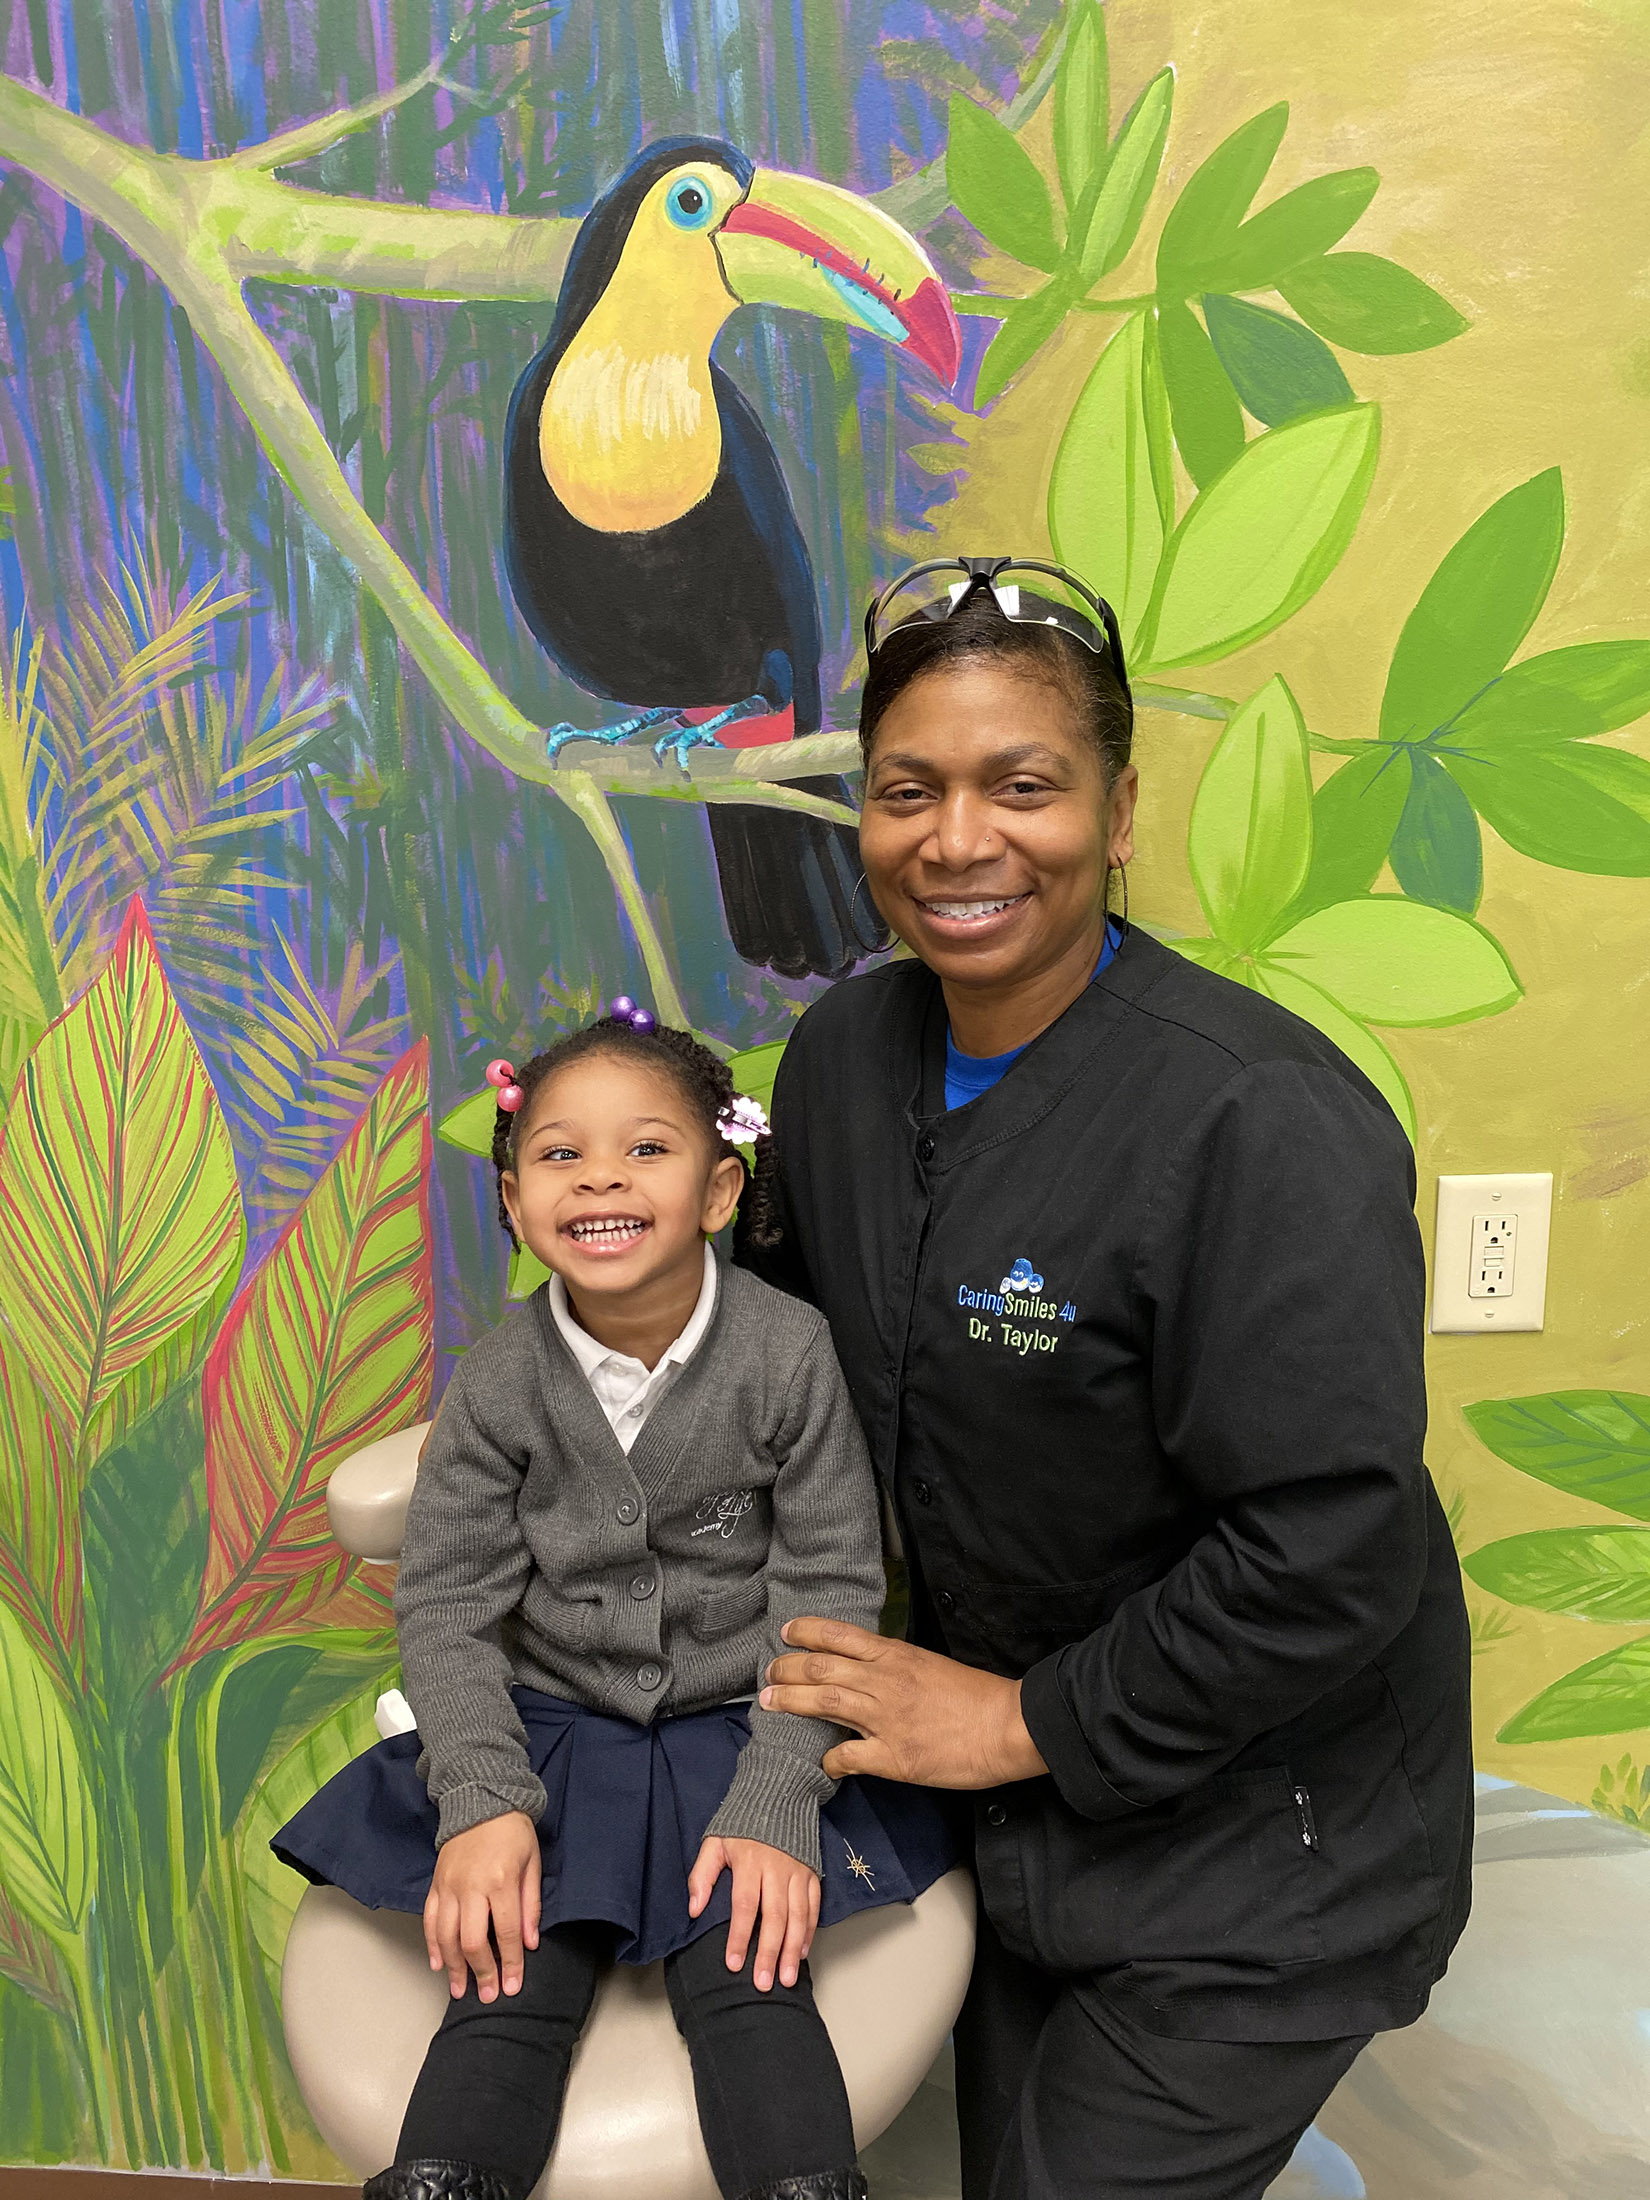 Juanita R. Taylor, DDS, Top Rated Dentist in Indianapolis